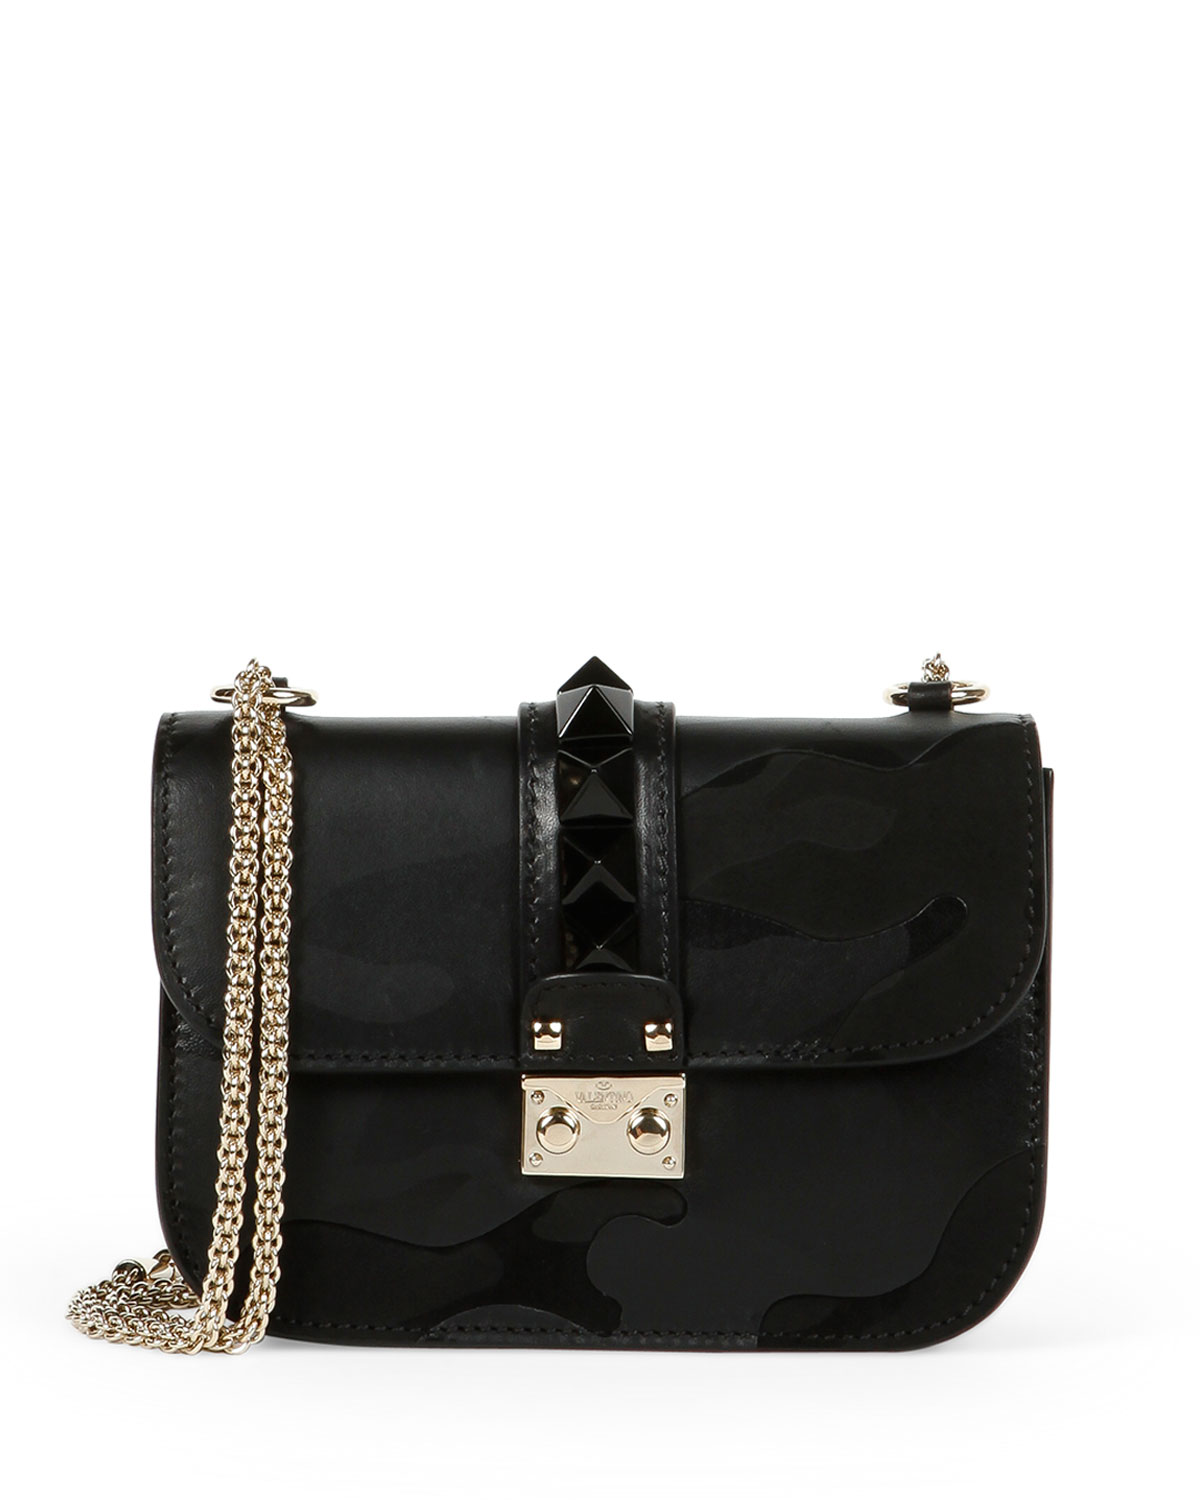 Lock Camo-Embossed Small Shoulder Bag, Black - Valentino